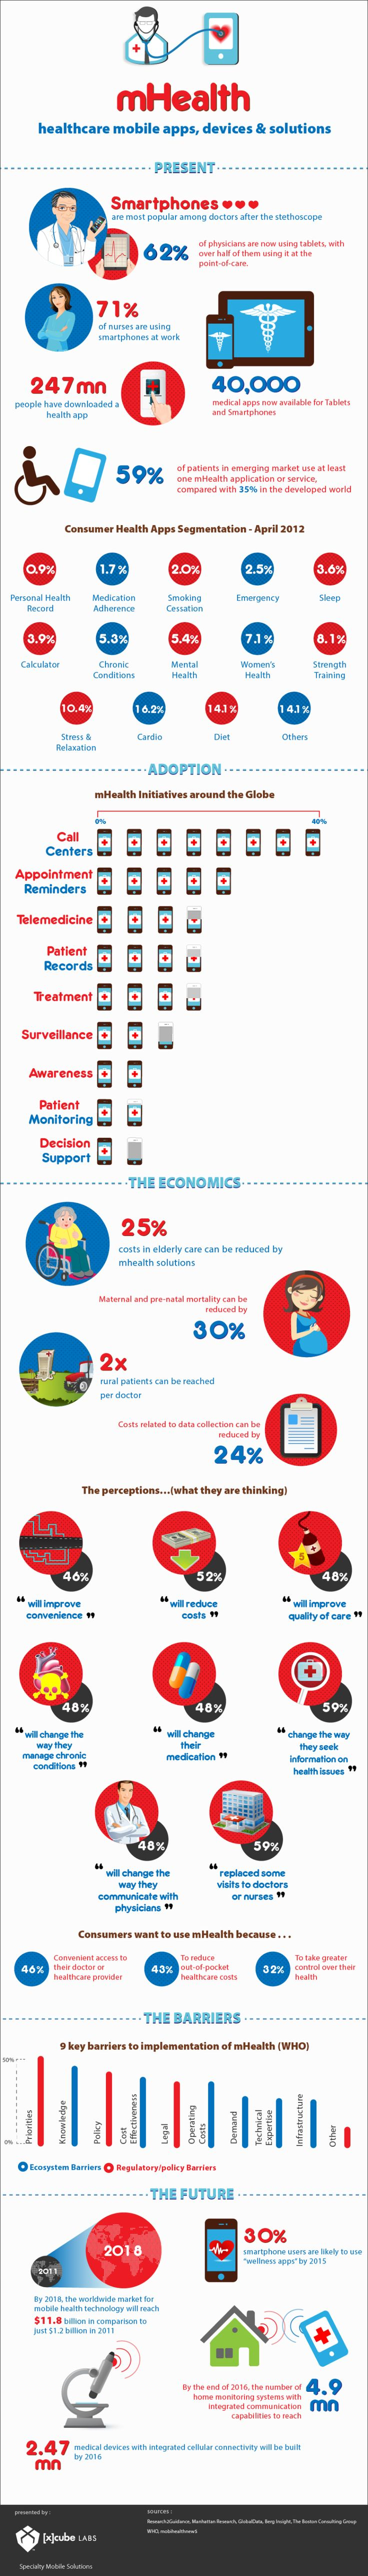 State of mHealth: Present, Adoption, Economics, Barriers, & Future